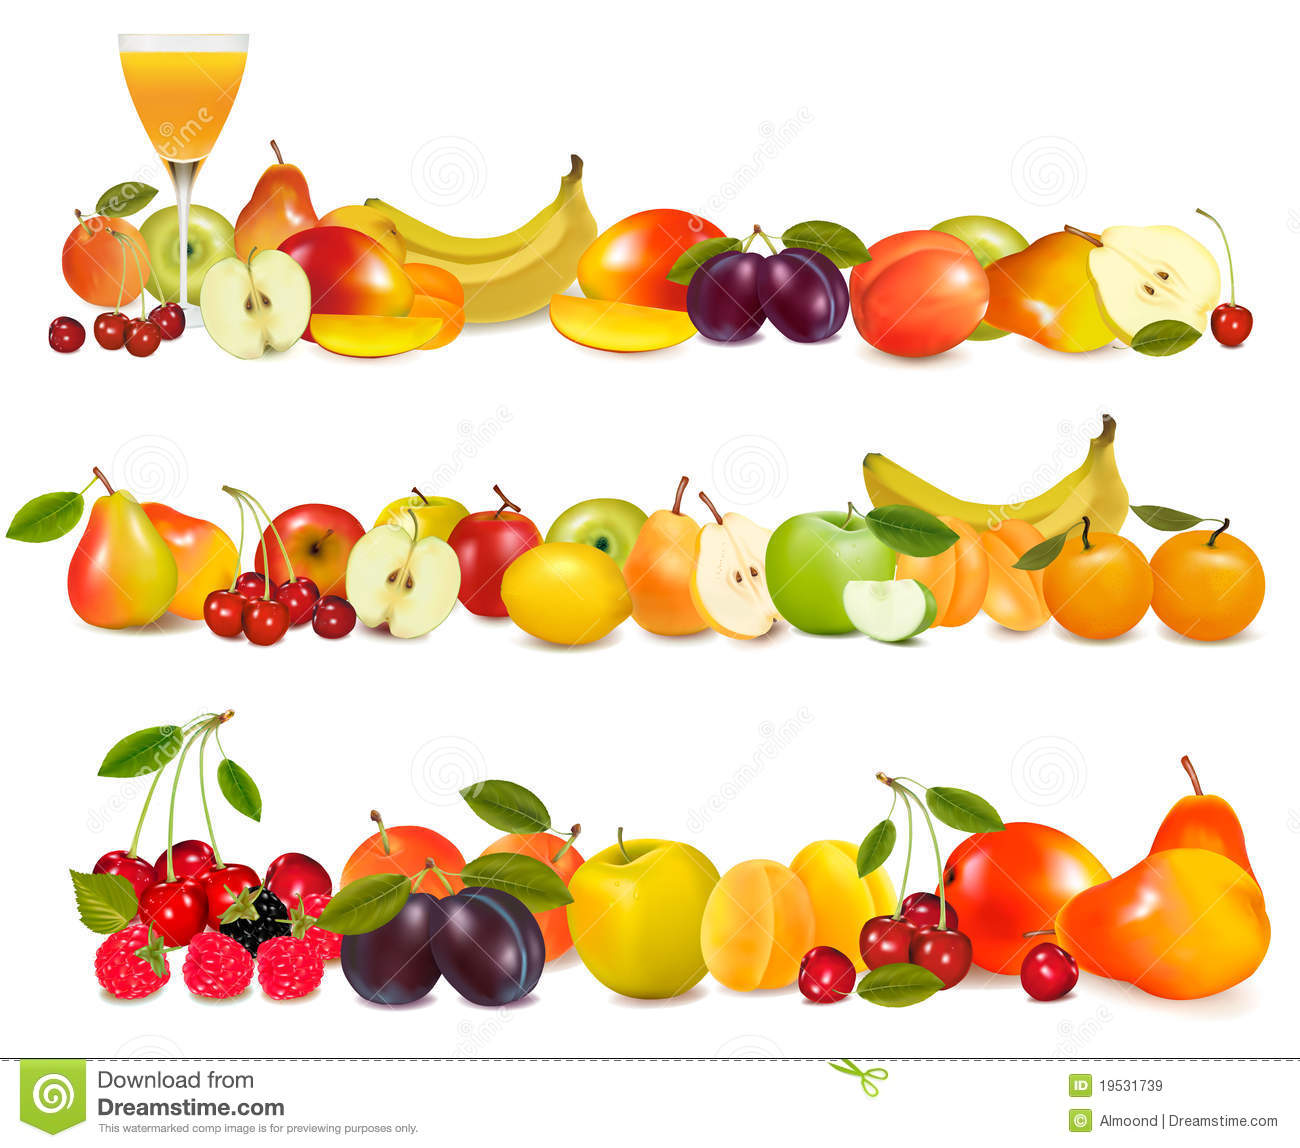 three-fruit-design-borders-isolated-white-19531739.jpg